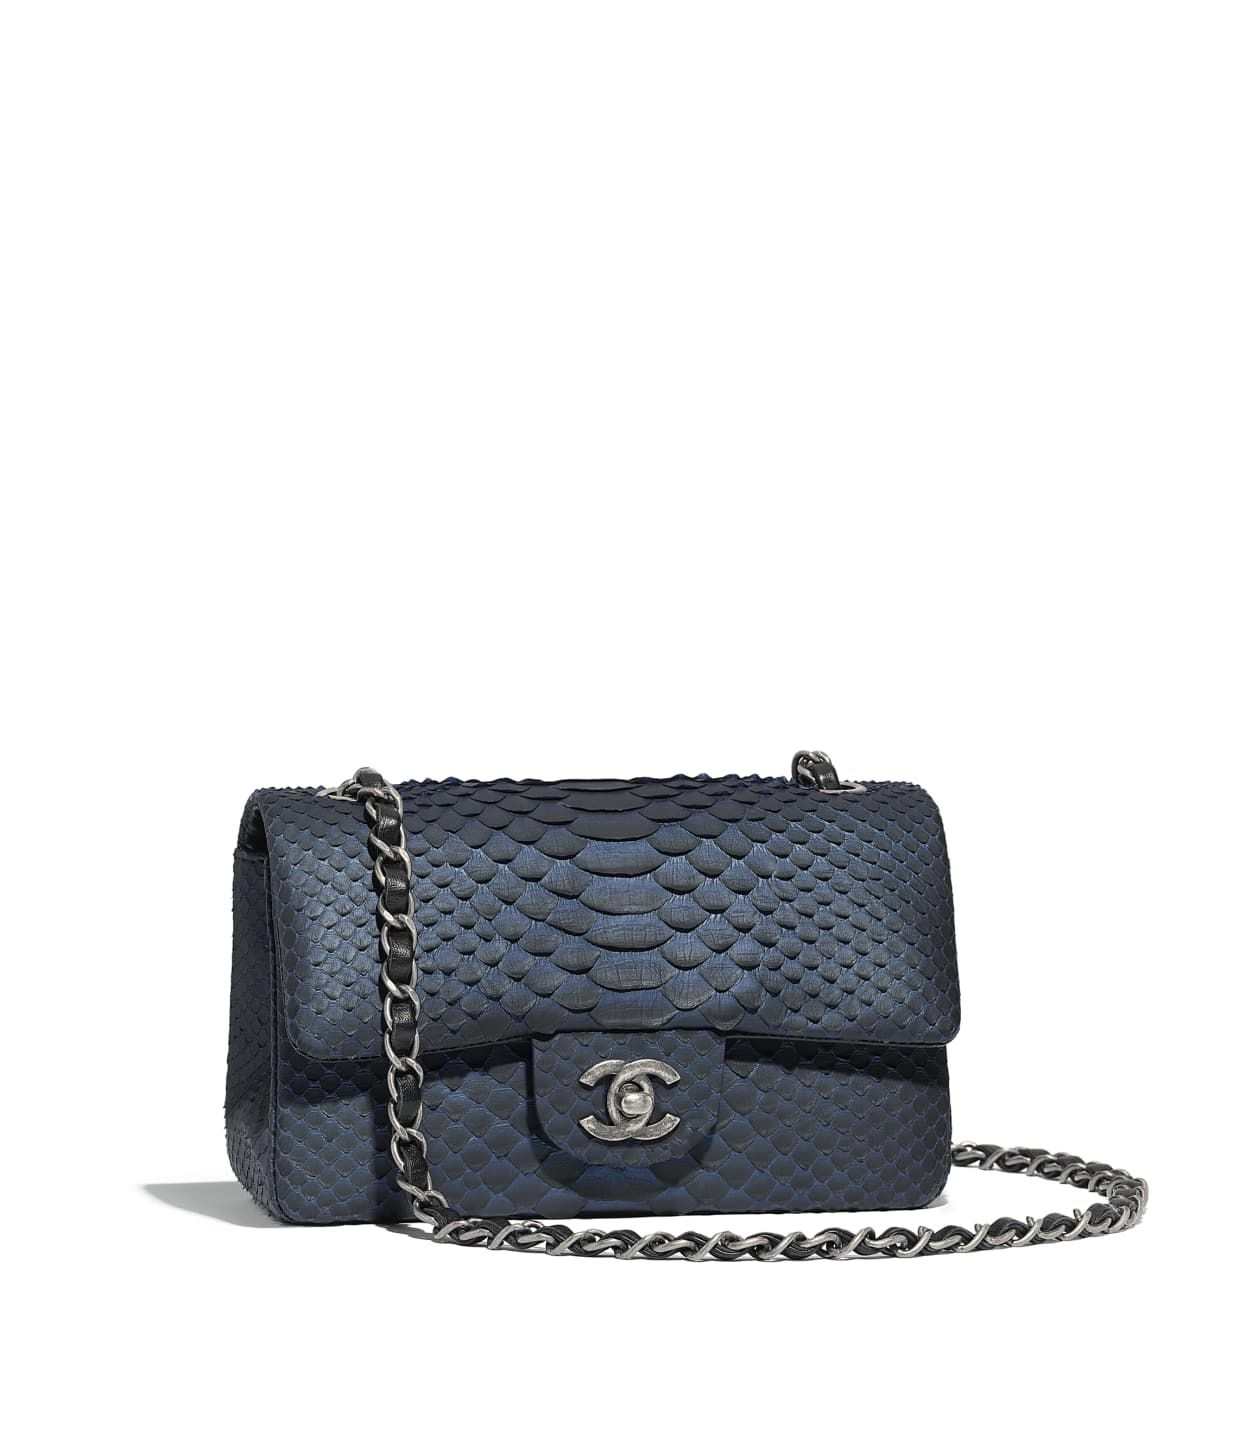 30191a486a8b Discover the CHANEL Python & Ruthenium-Finish Metal Blue & Black Mini Flap  Bag, and explore the artistry and craftsmanship of the House of CHANEL.